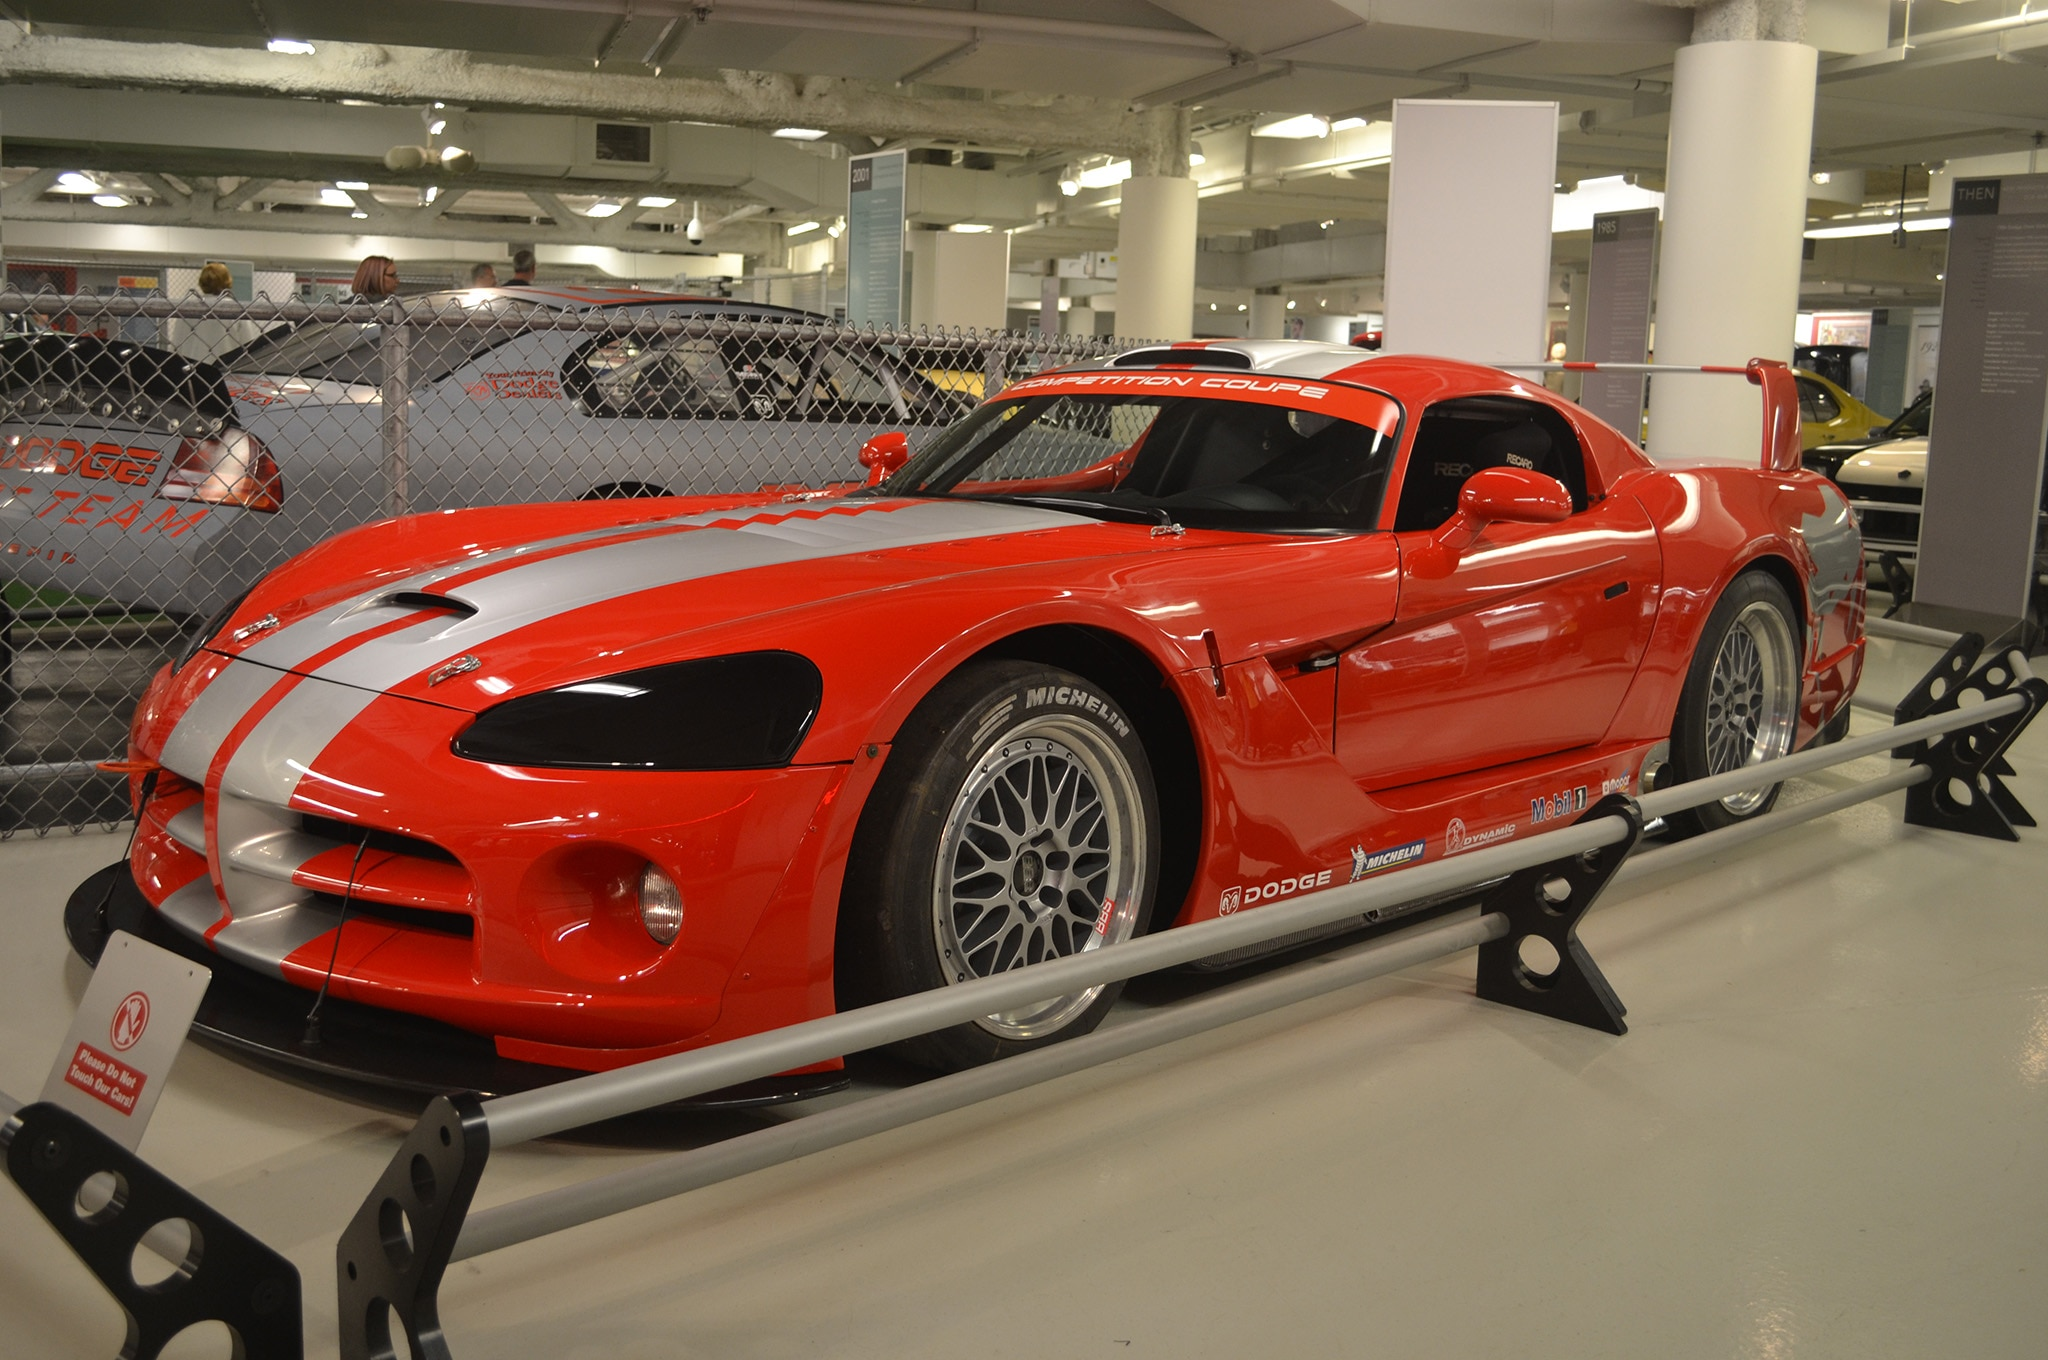 The Top 10 Most Interesting Vehicles at the Walter P Chrysler Museum